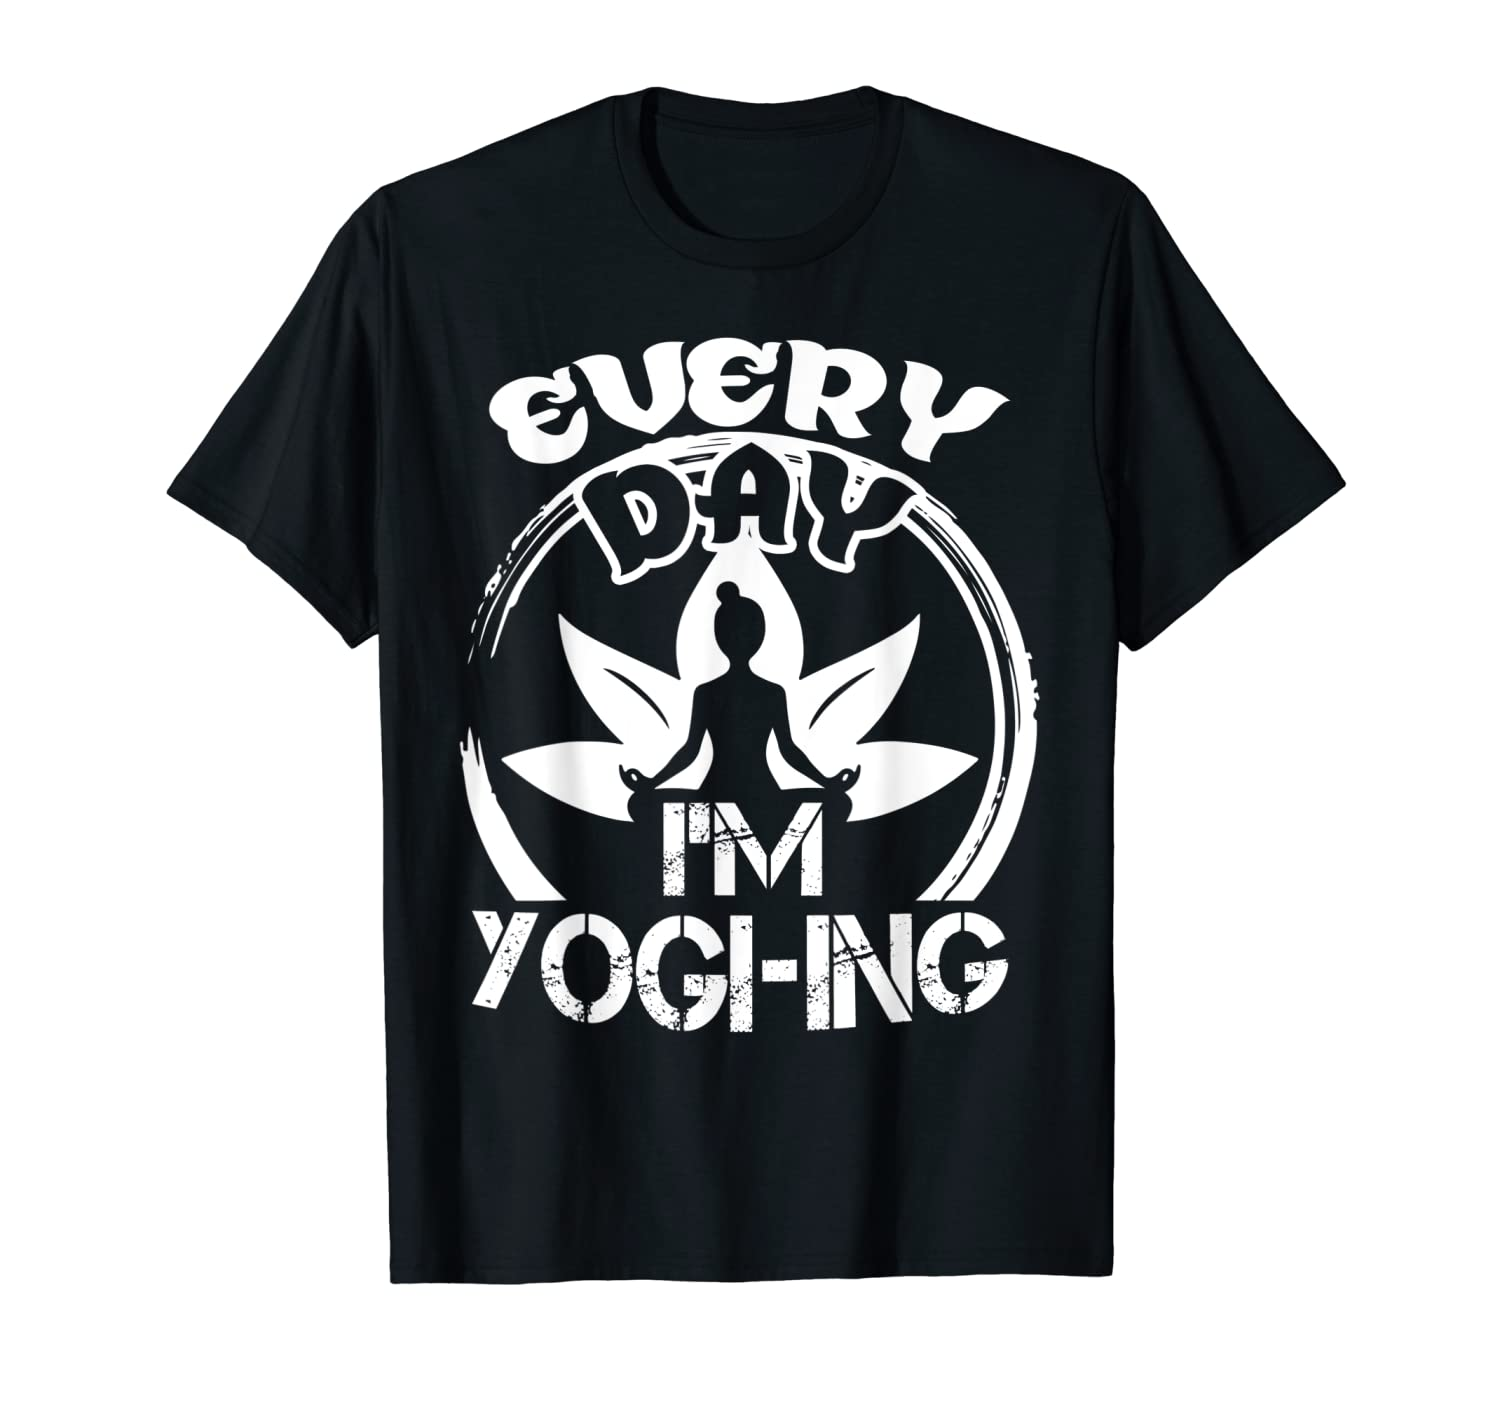 Amazon.com: Yoga Shirt - Every Day Im Yoga T-Shirt: Clothing